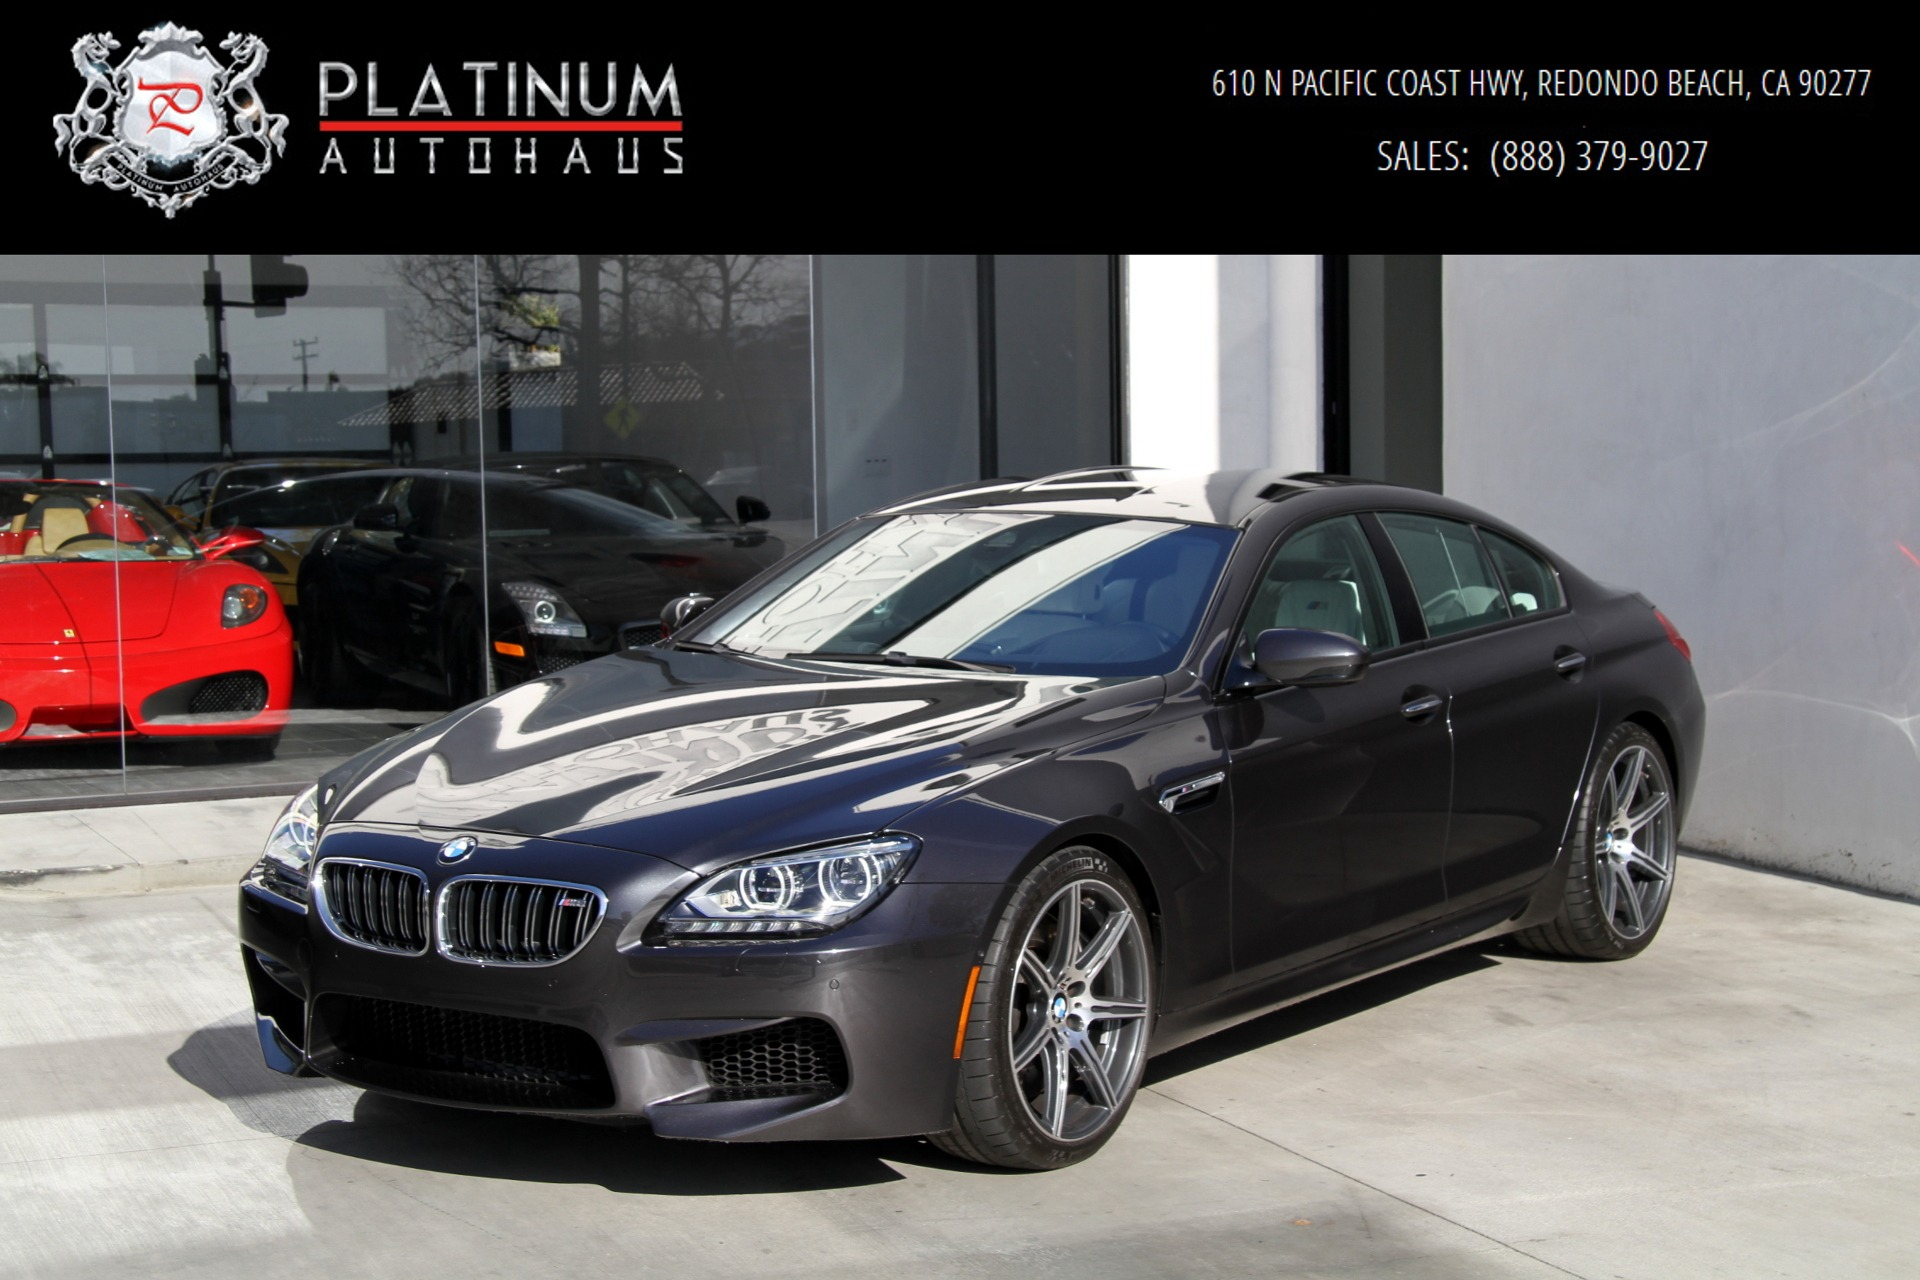 2015 Bmw M6 Gran Coupe Competition Pkg Stock 6075 For Sale Near Redondo Beach Ca Ca Bmw Dealer